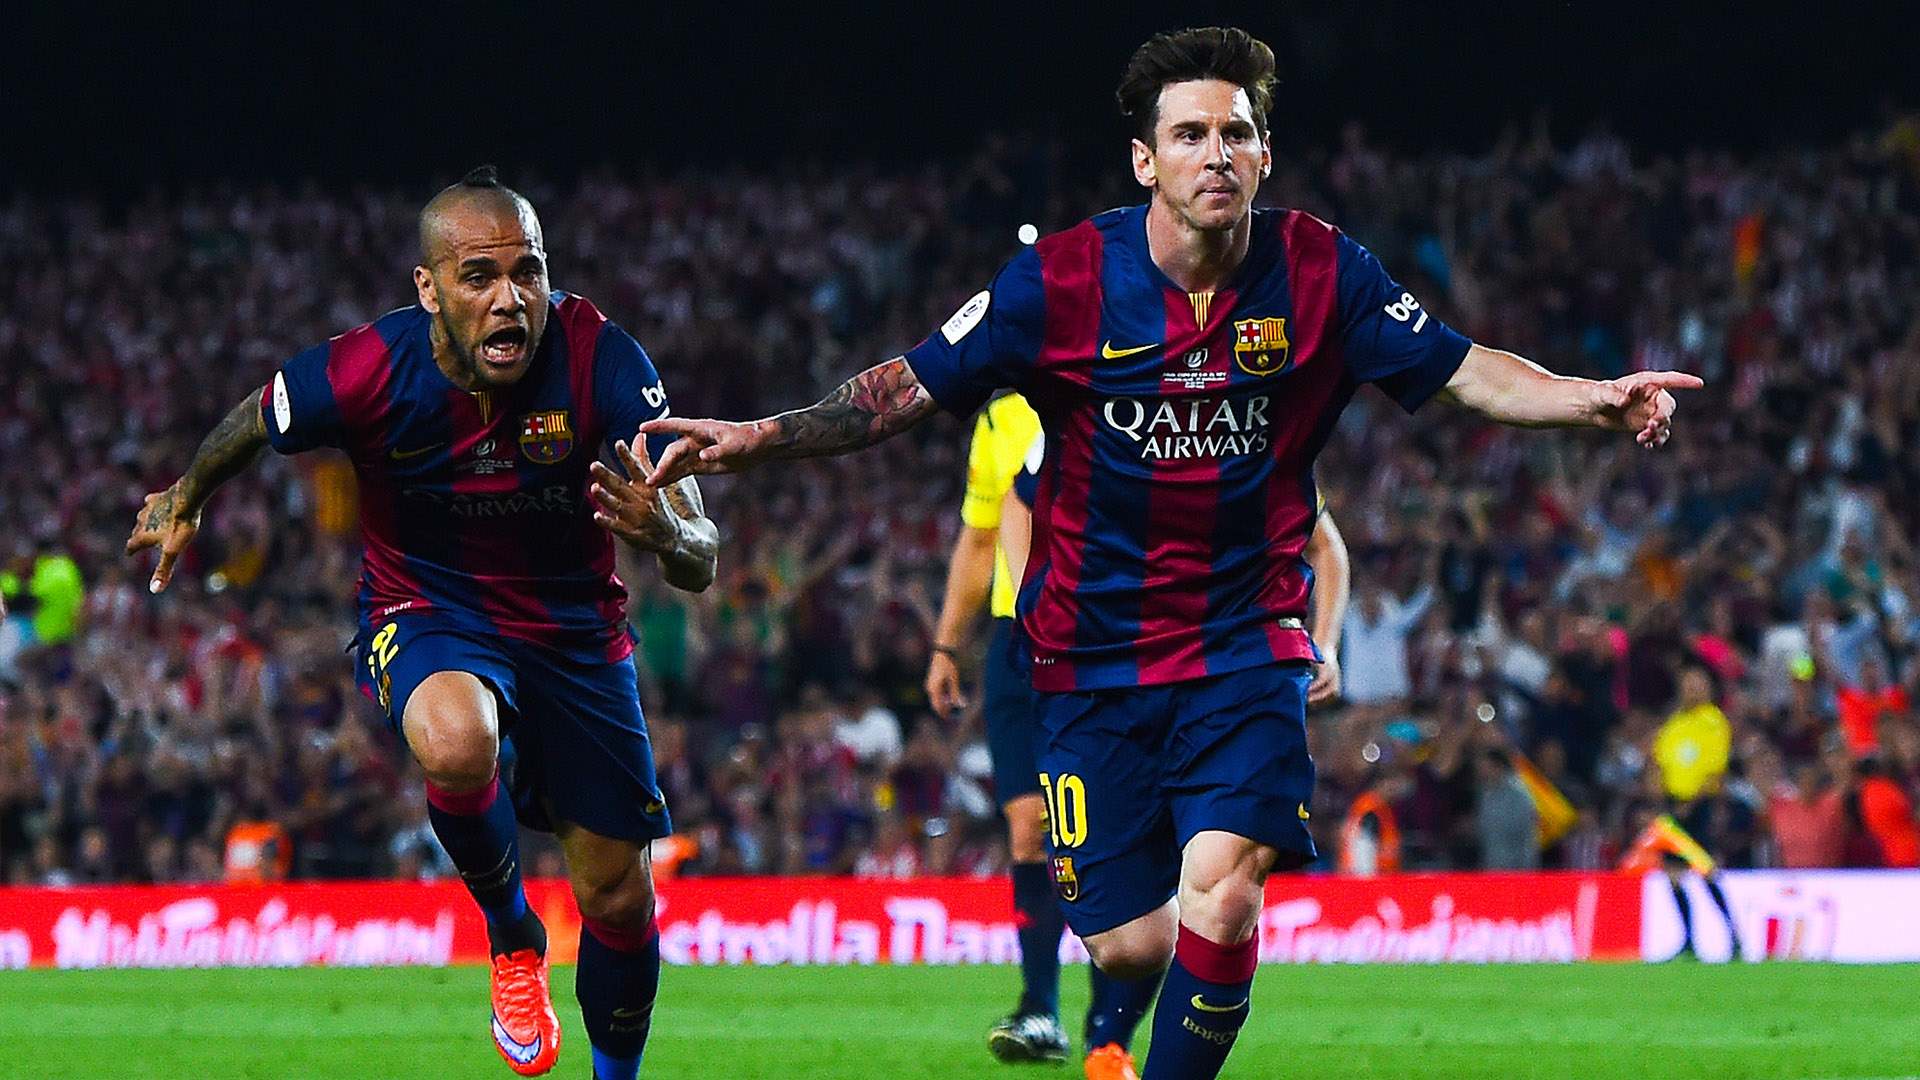 Messi celebrates opening the scoring against Bilbao